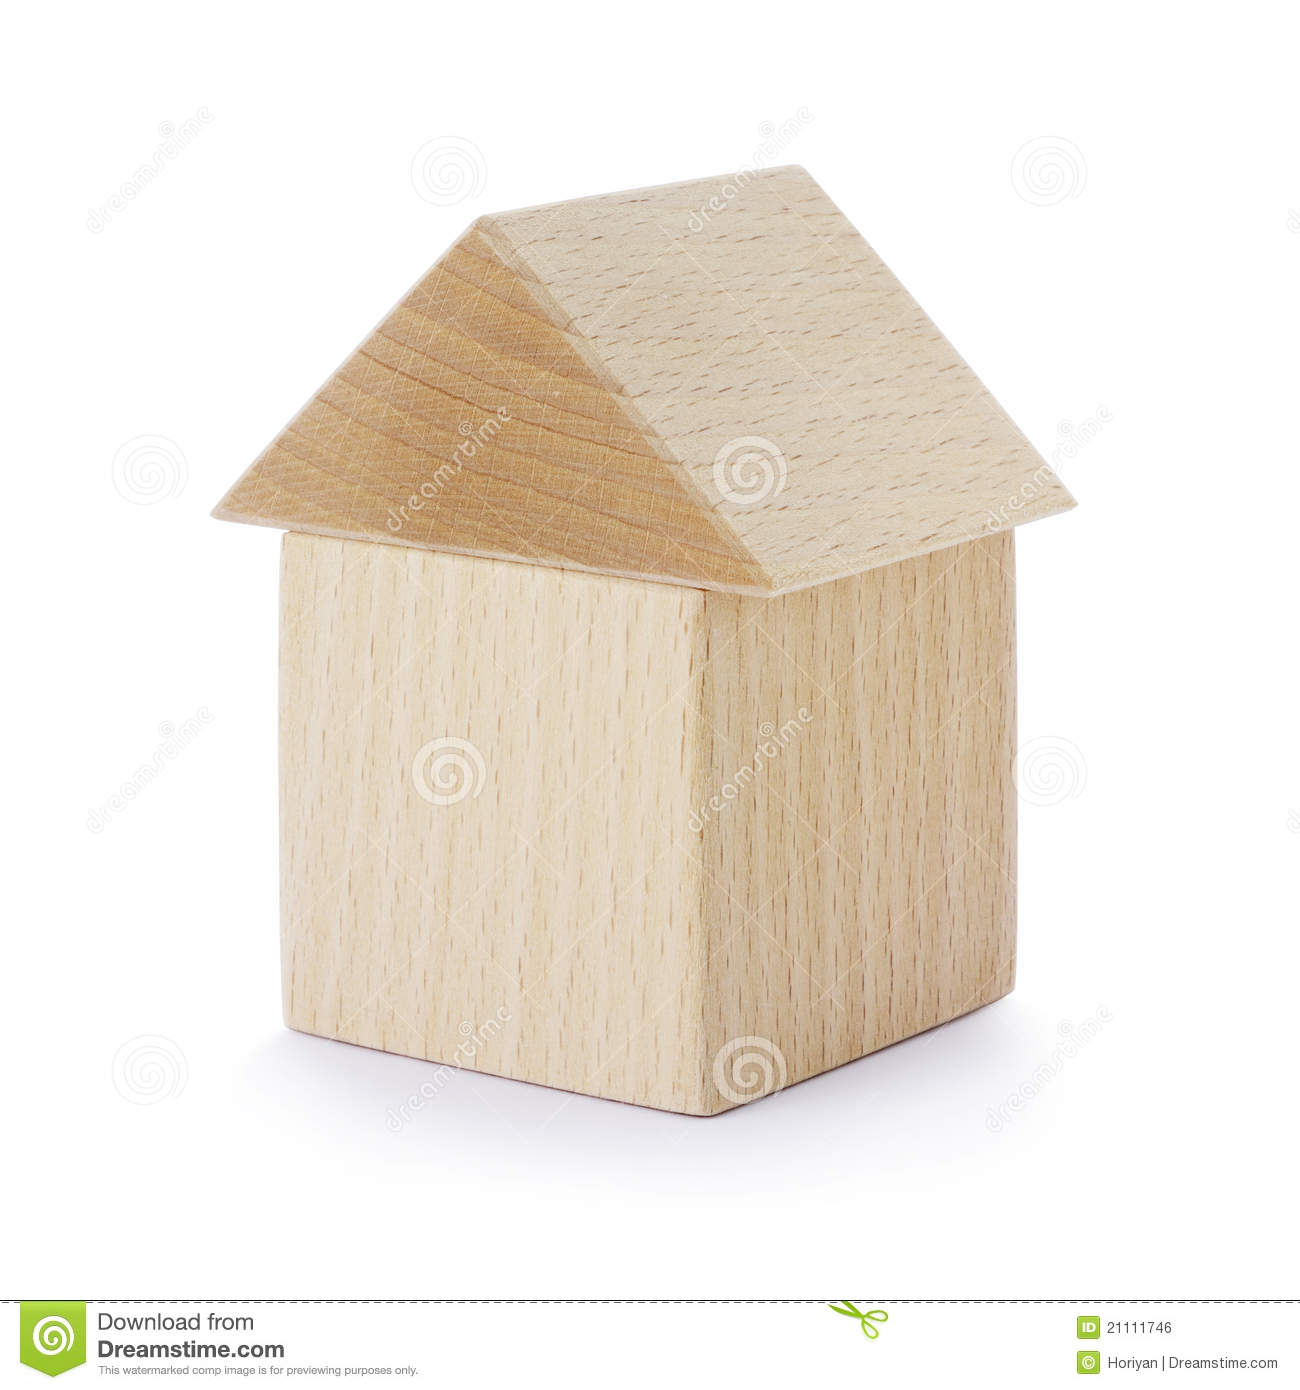 how to make a toy house account